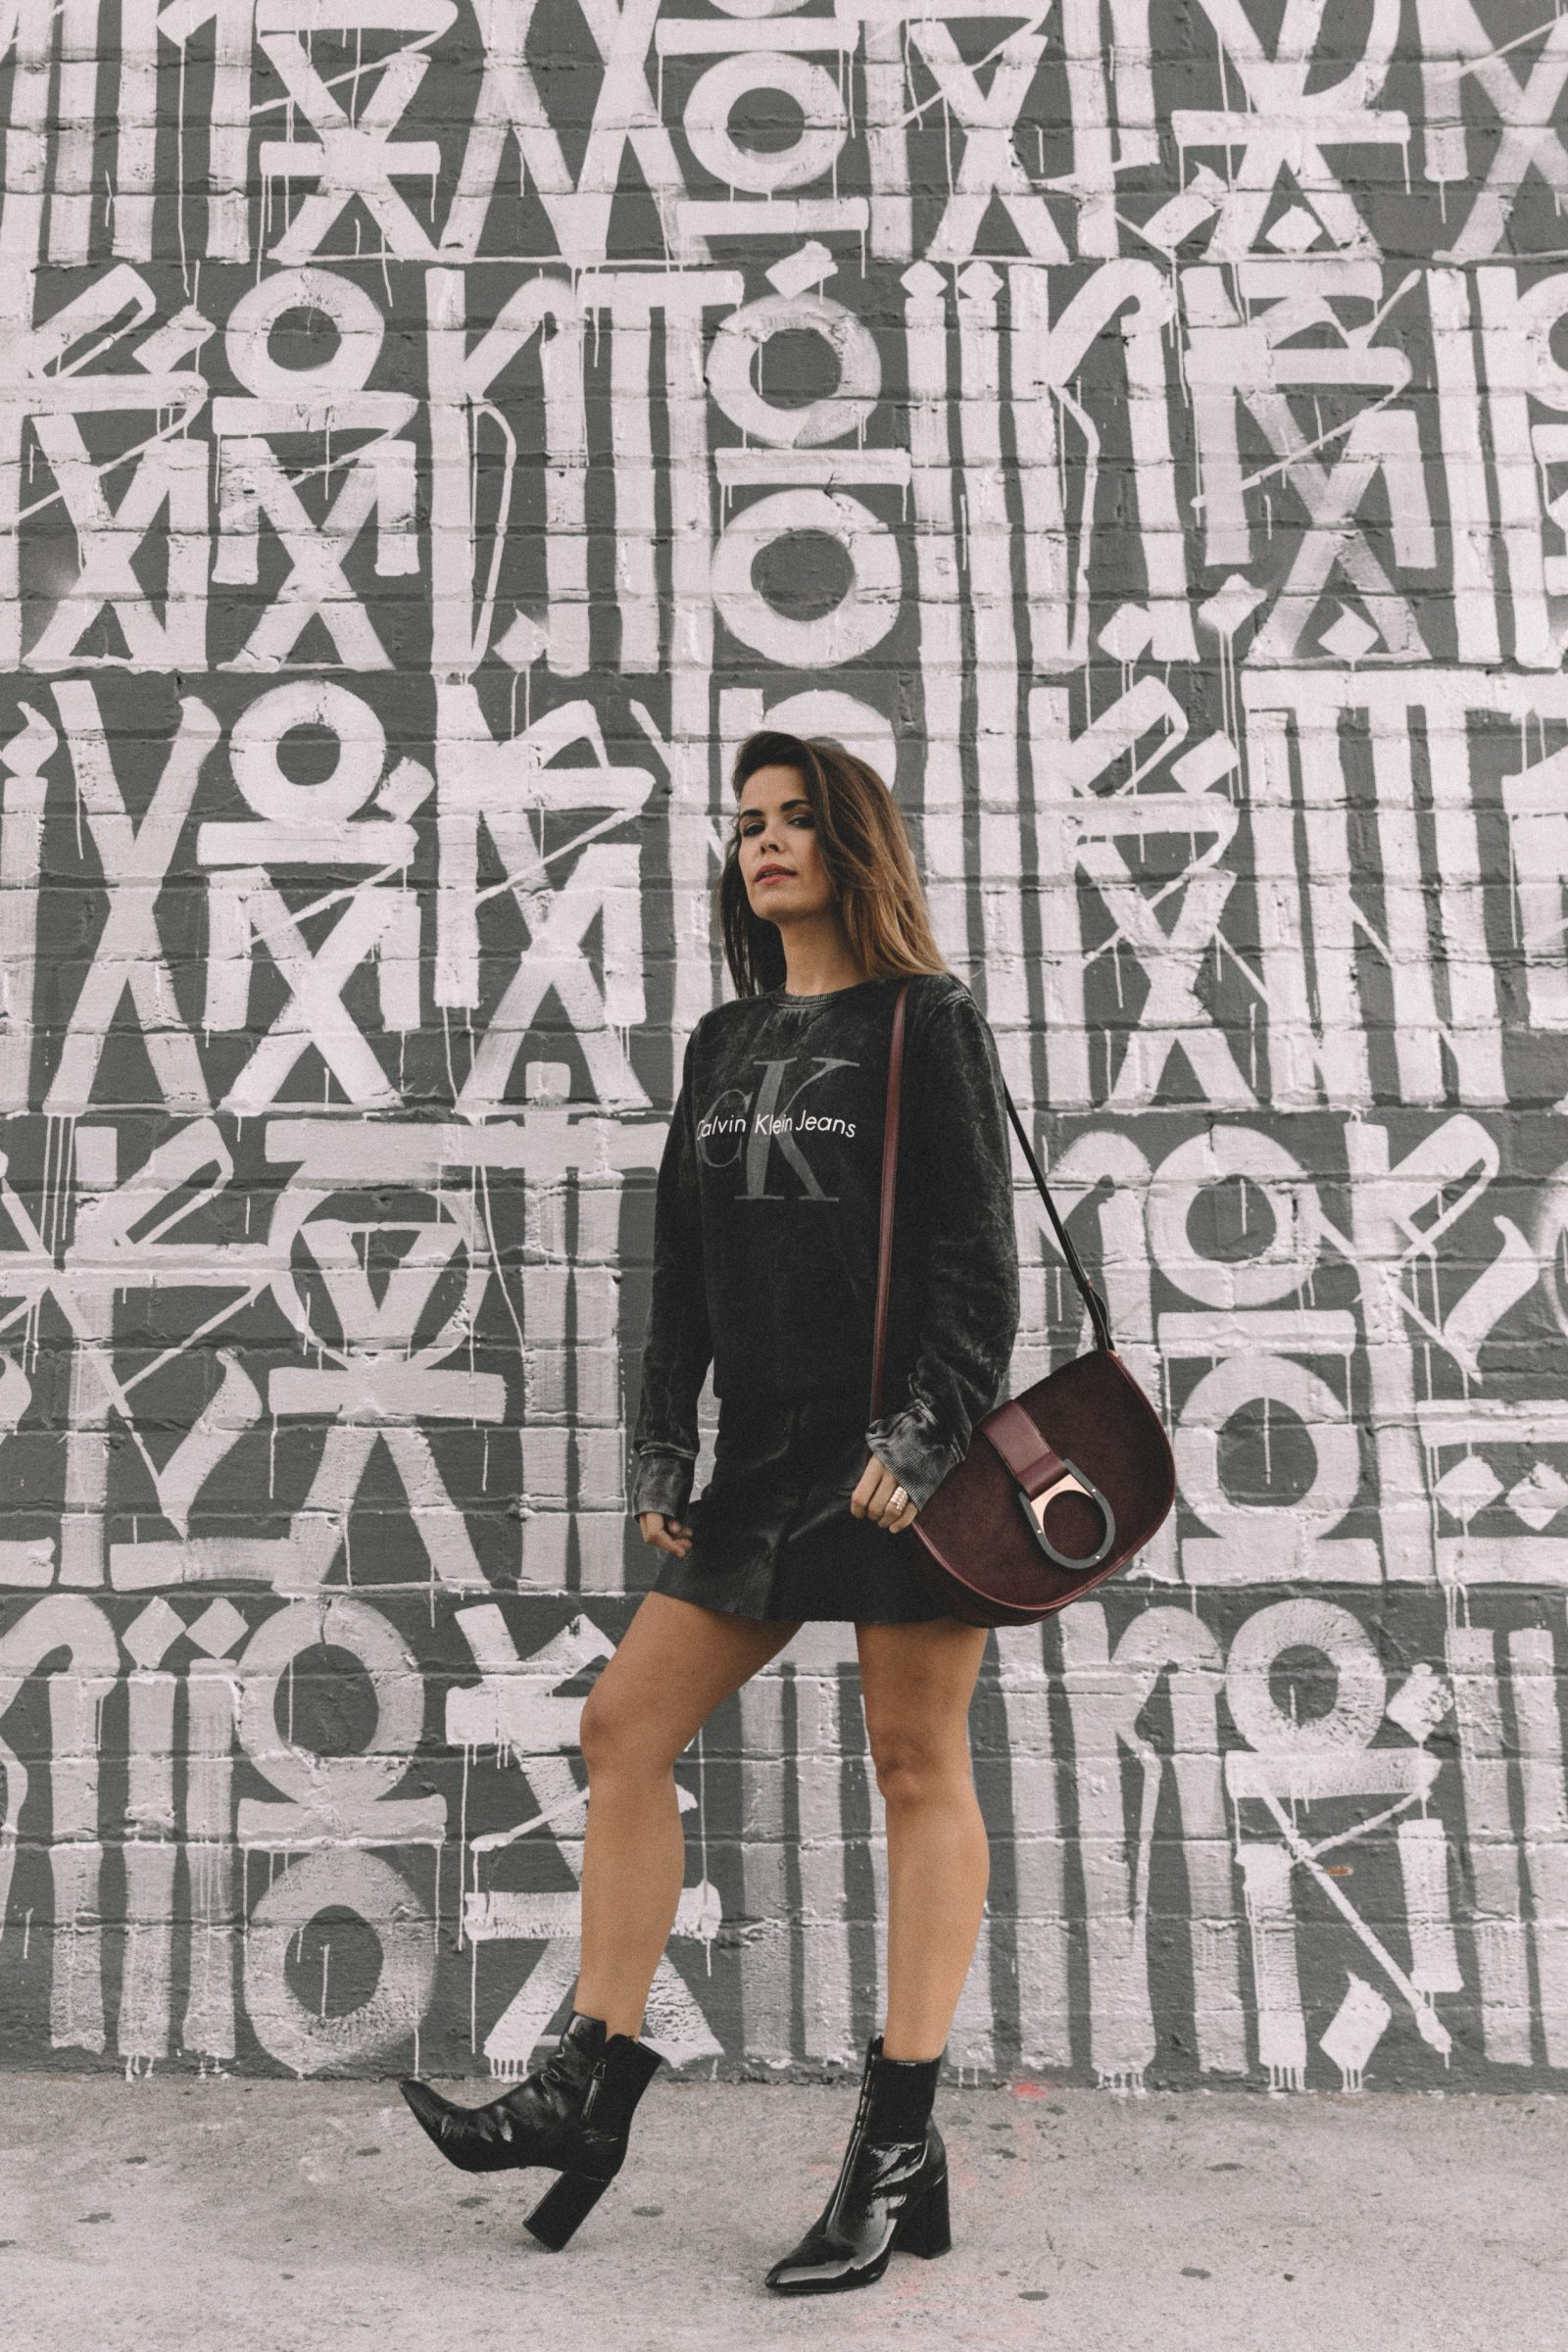 calvin_klein_bag-burgundy_bag-ck_sweatshirt-leather_shirt-total_black_outfit-street_style-los_angeles-collage_vintage-22